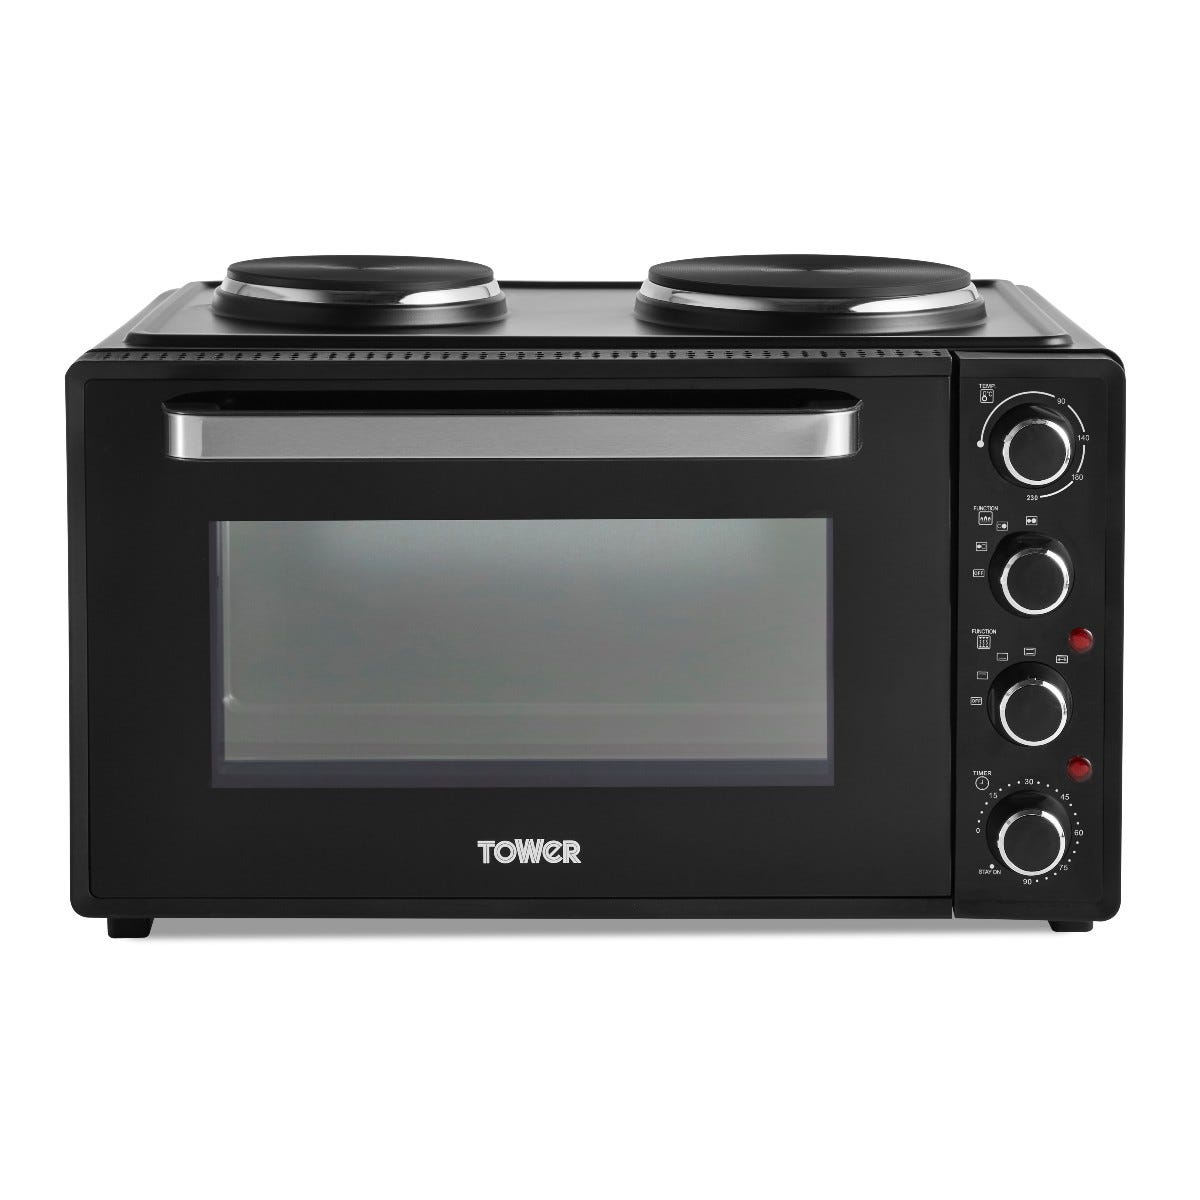 Tower T14045 42L Mini Oven with Hot Plates and Rotisserie - Black